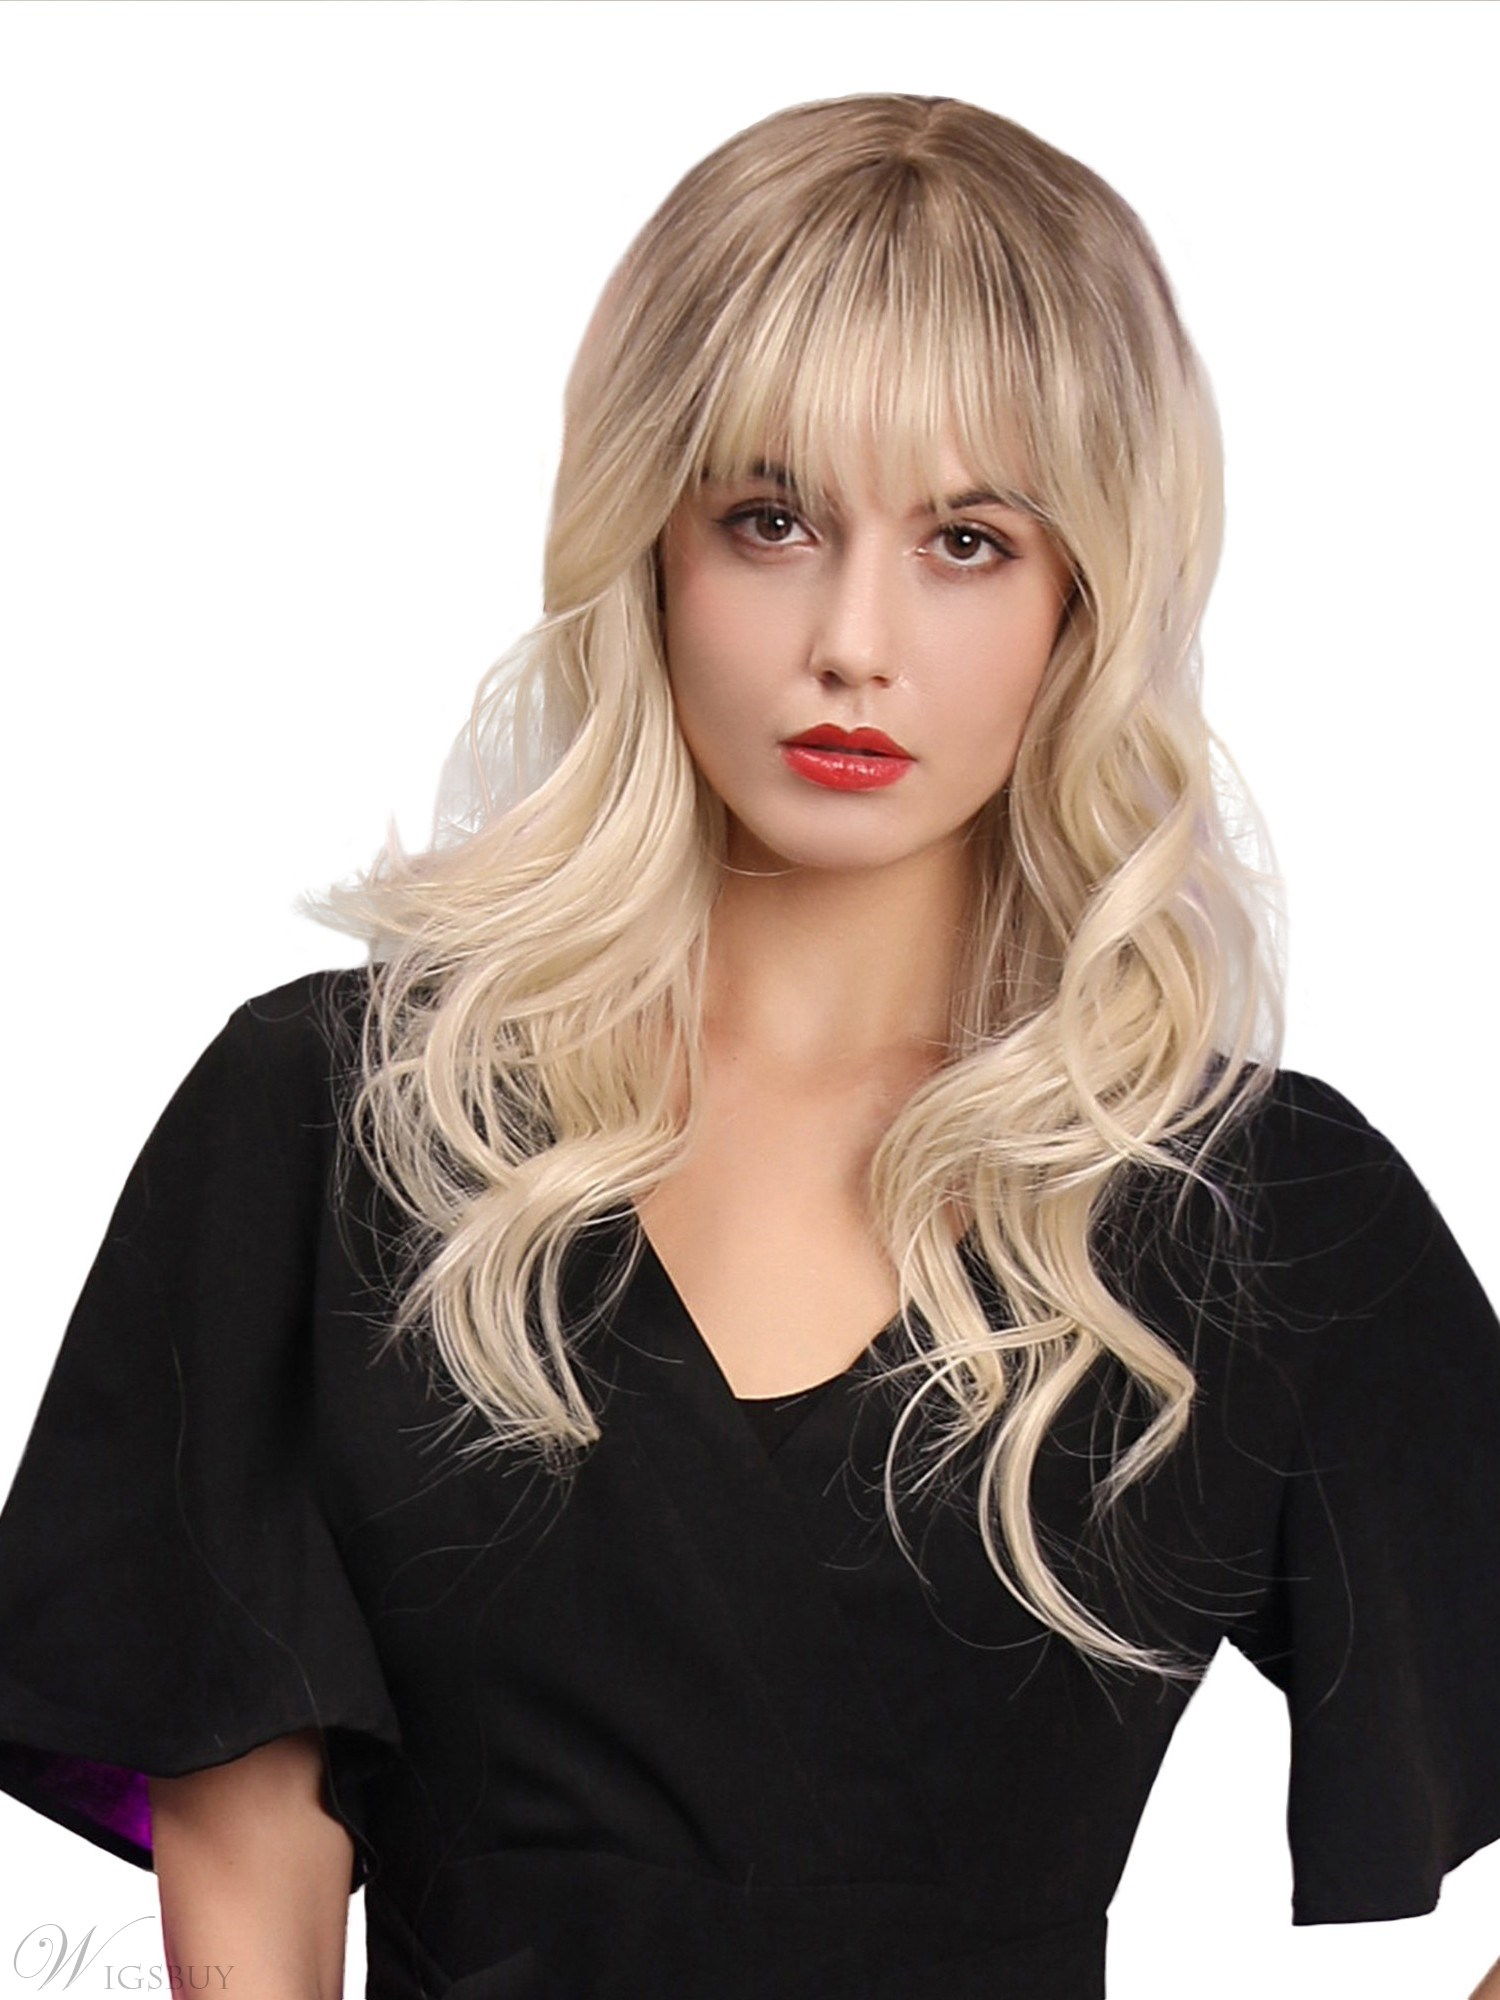 130% Density Women's Long Length Wavy Hairstyles Synthetic Hair Wigs Capless Wigs 20Inches